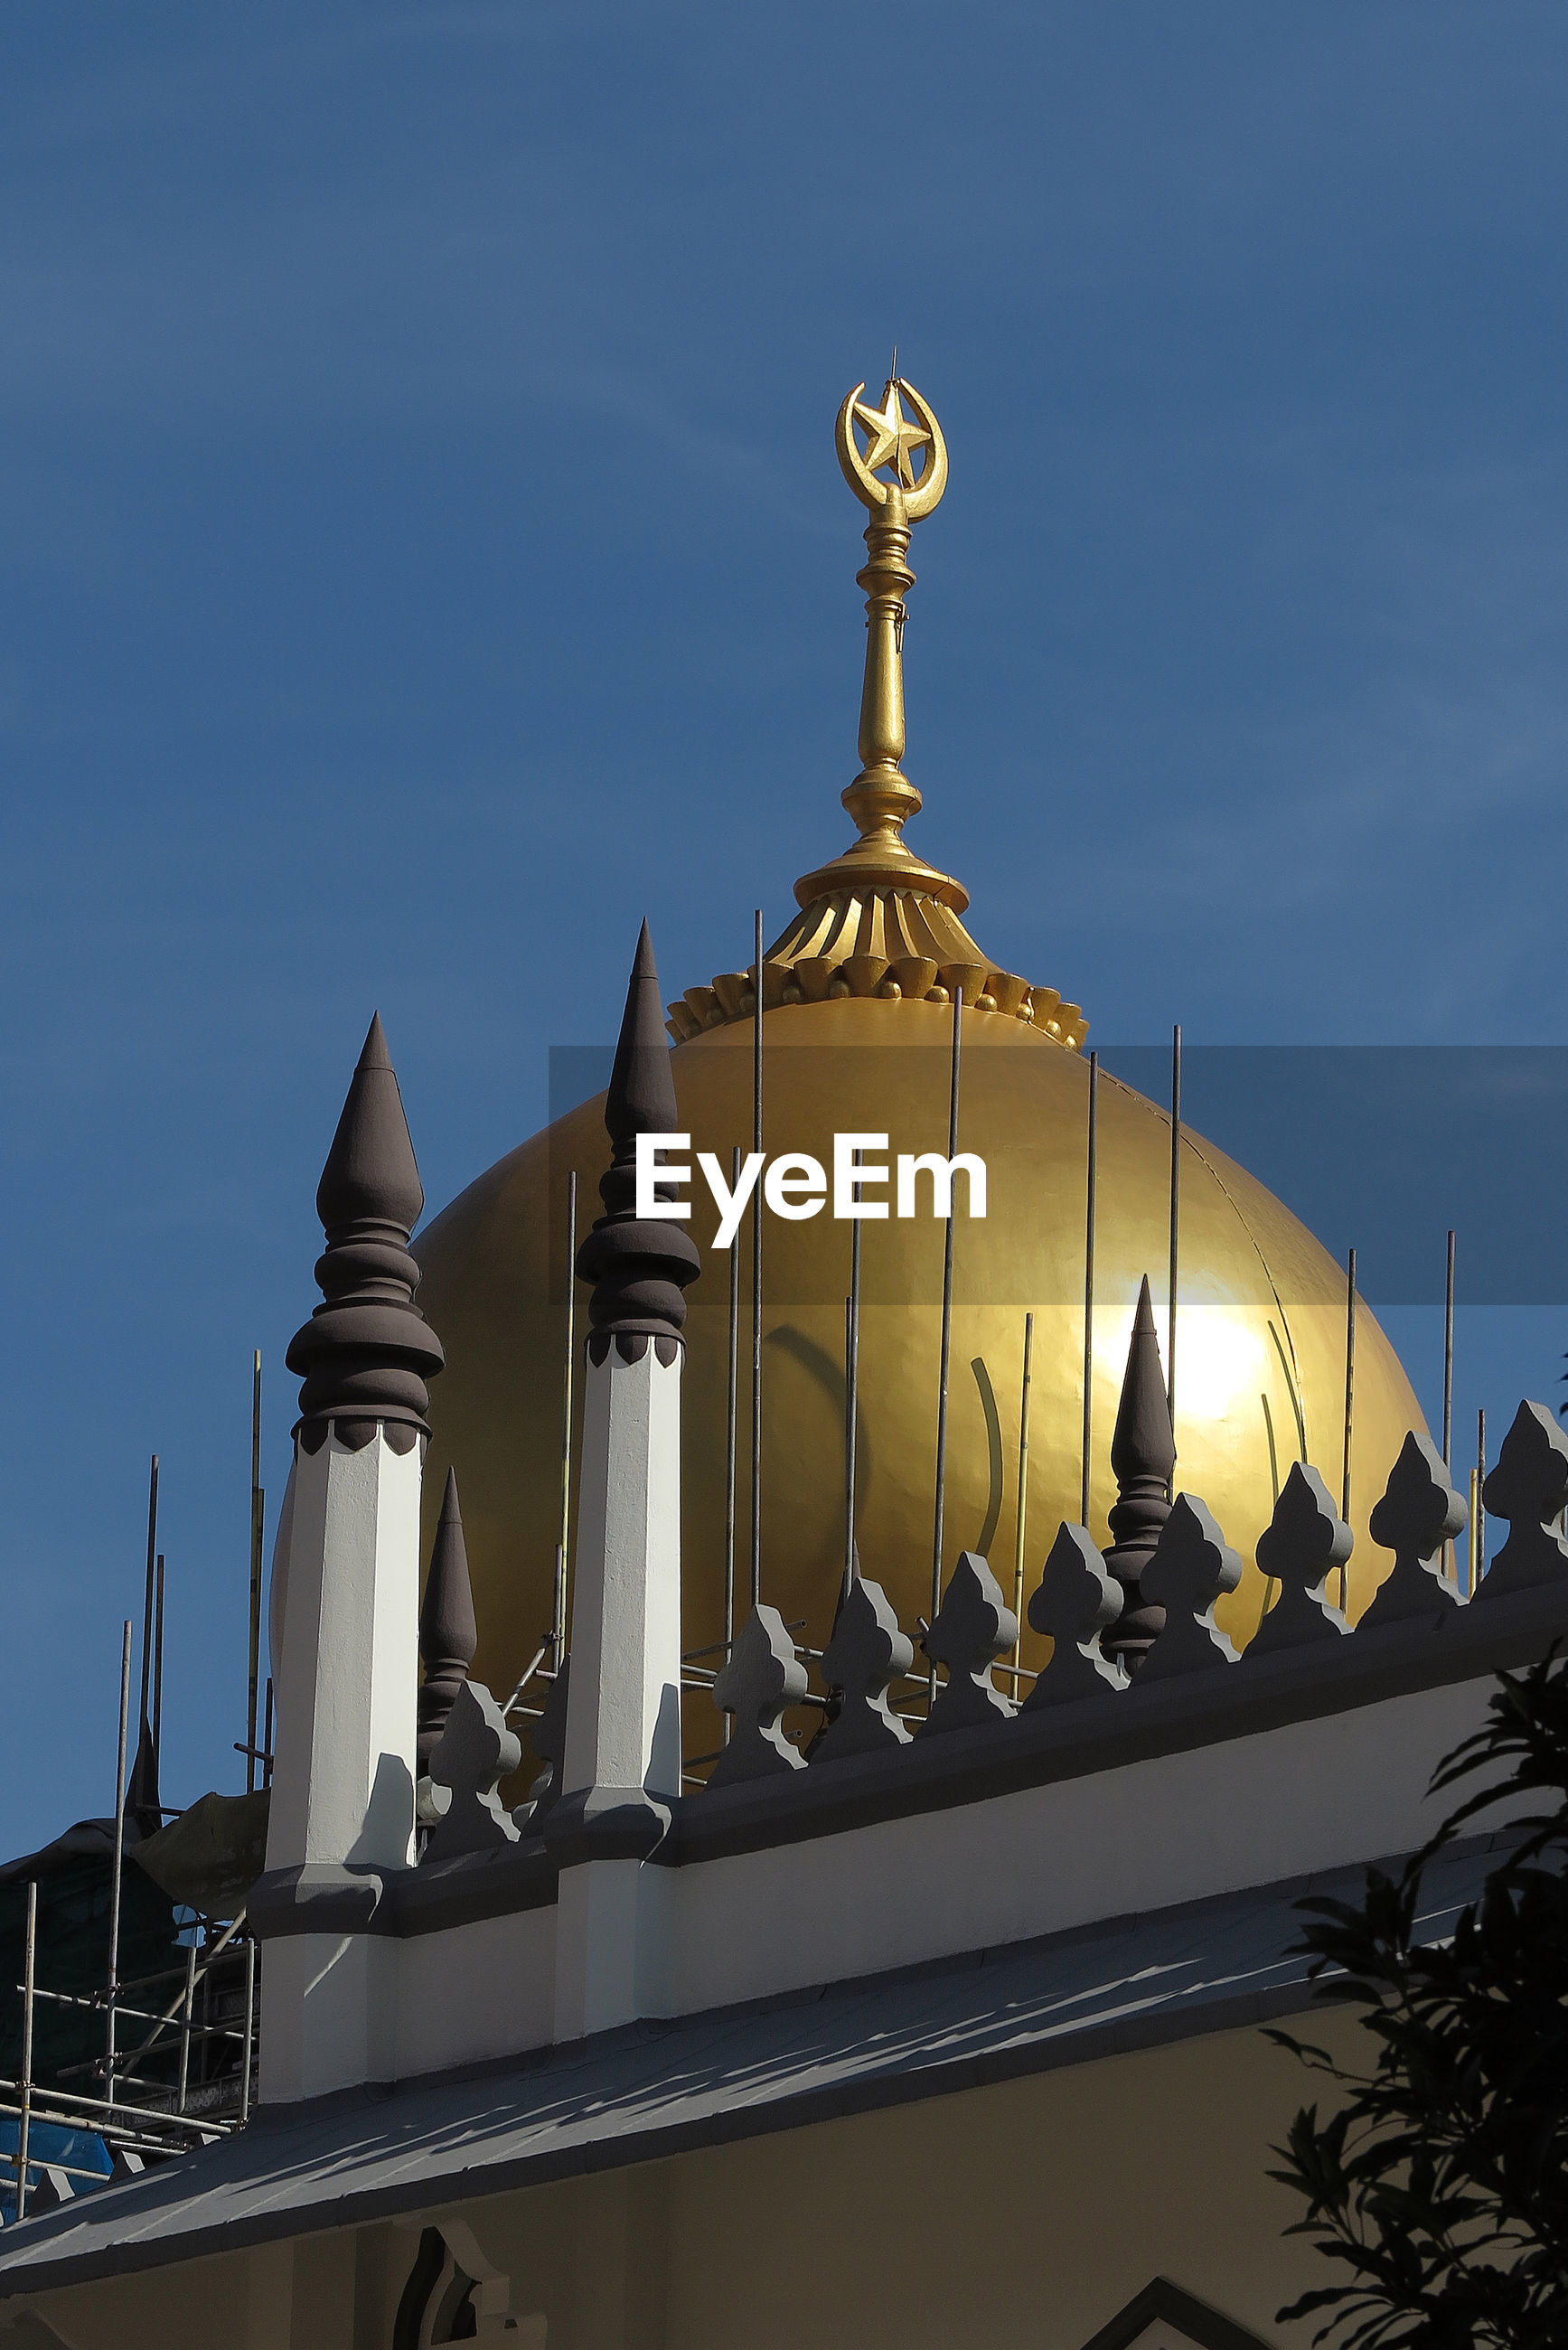 Golden dome of sultan mosque against blue sky